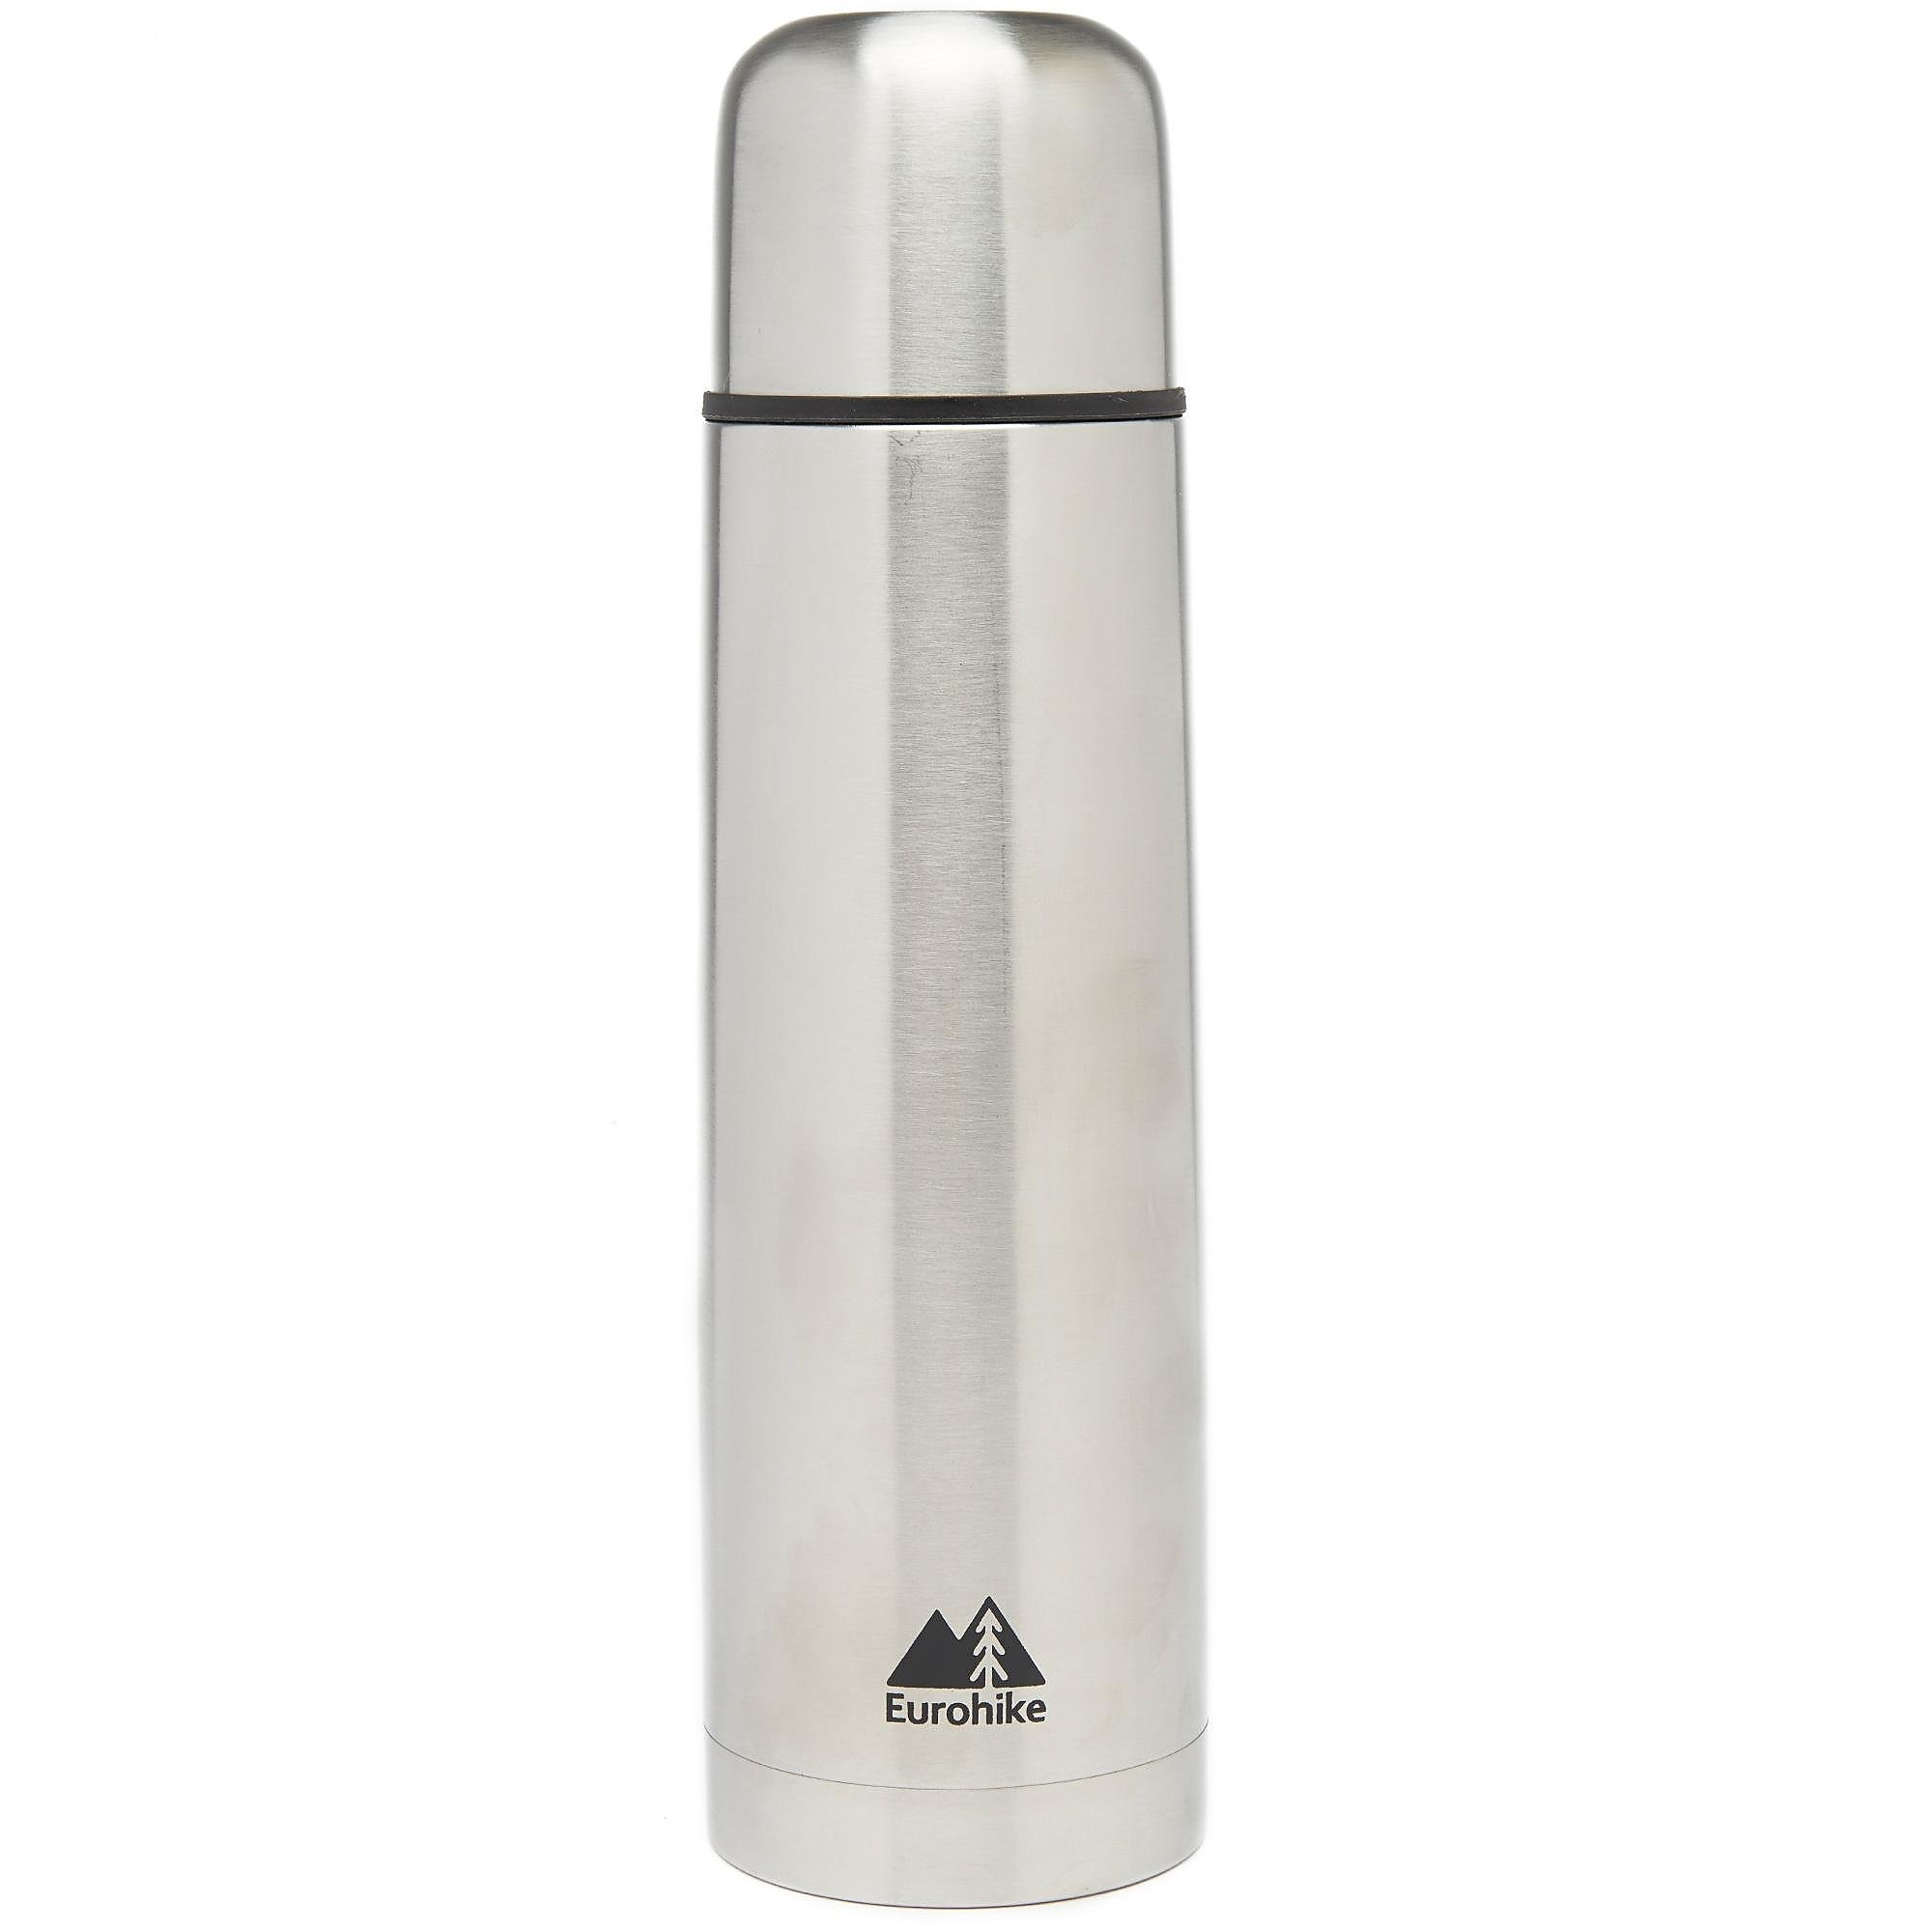 Eurohike Stainless Steel Flask 1L